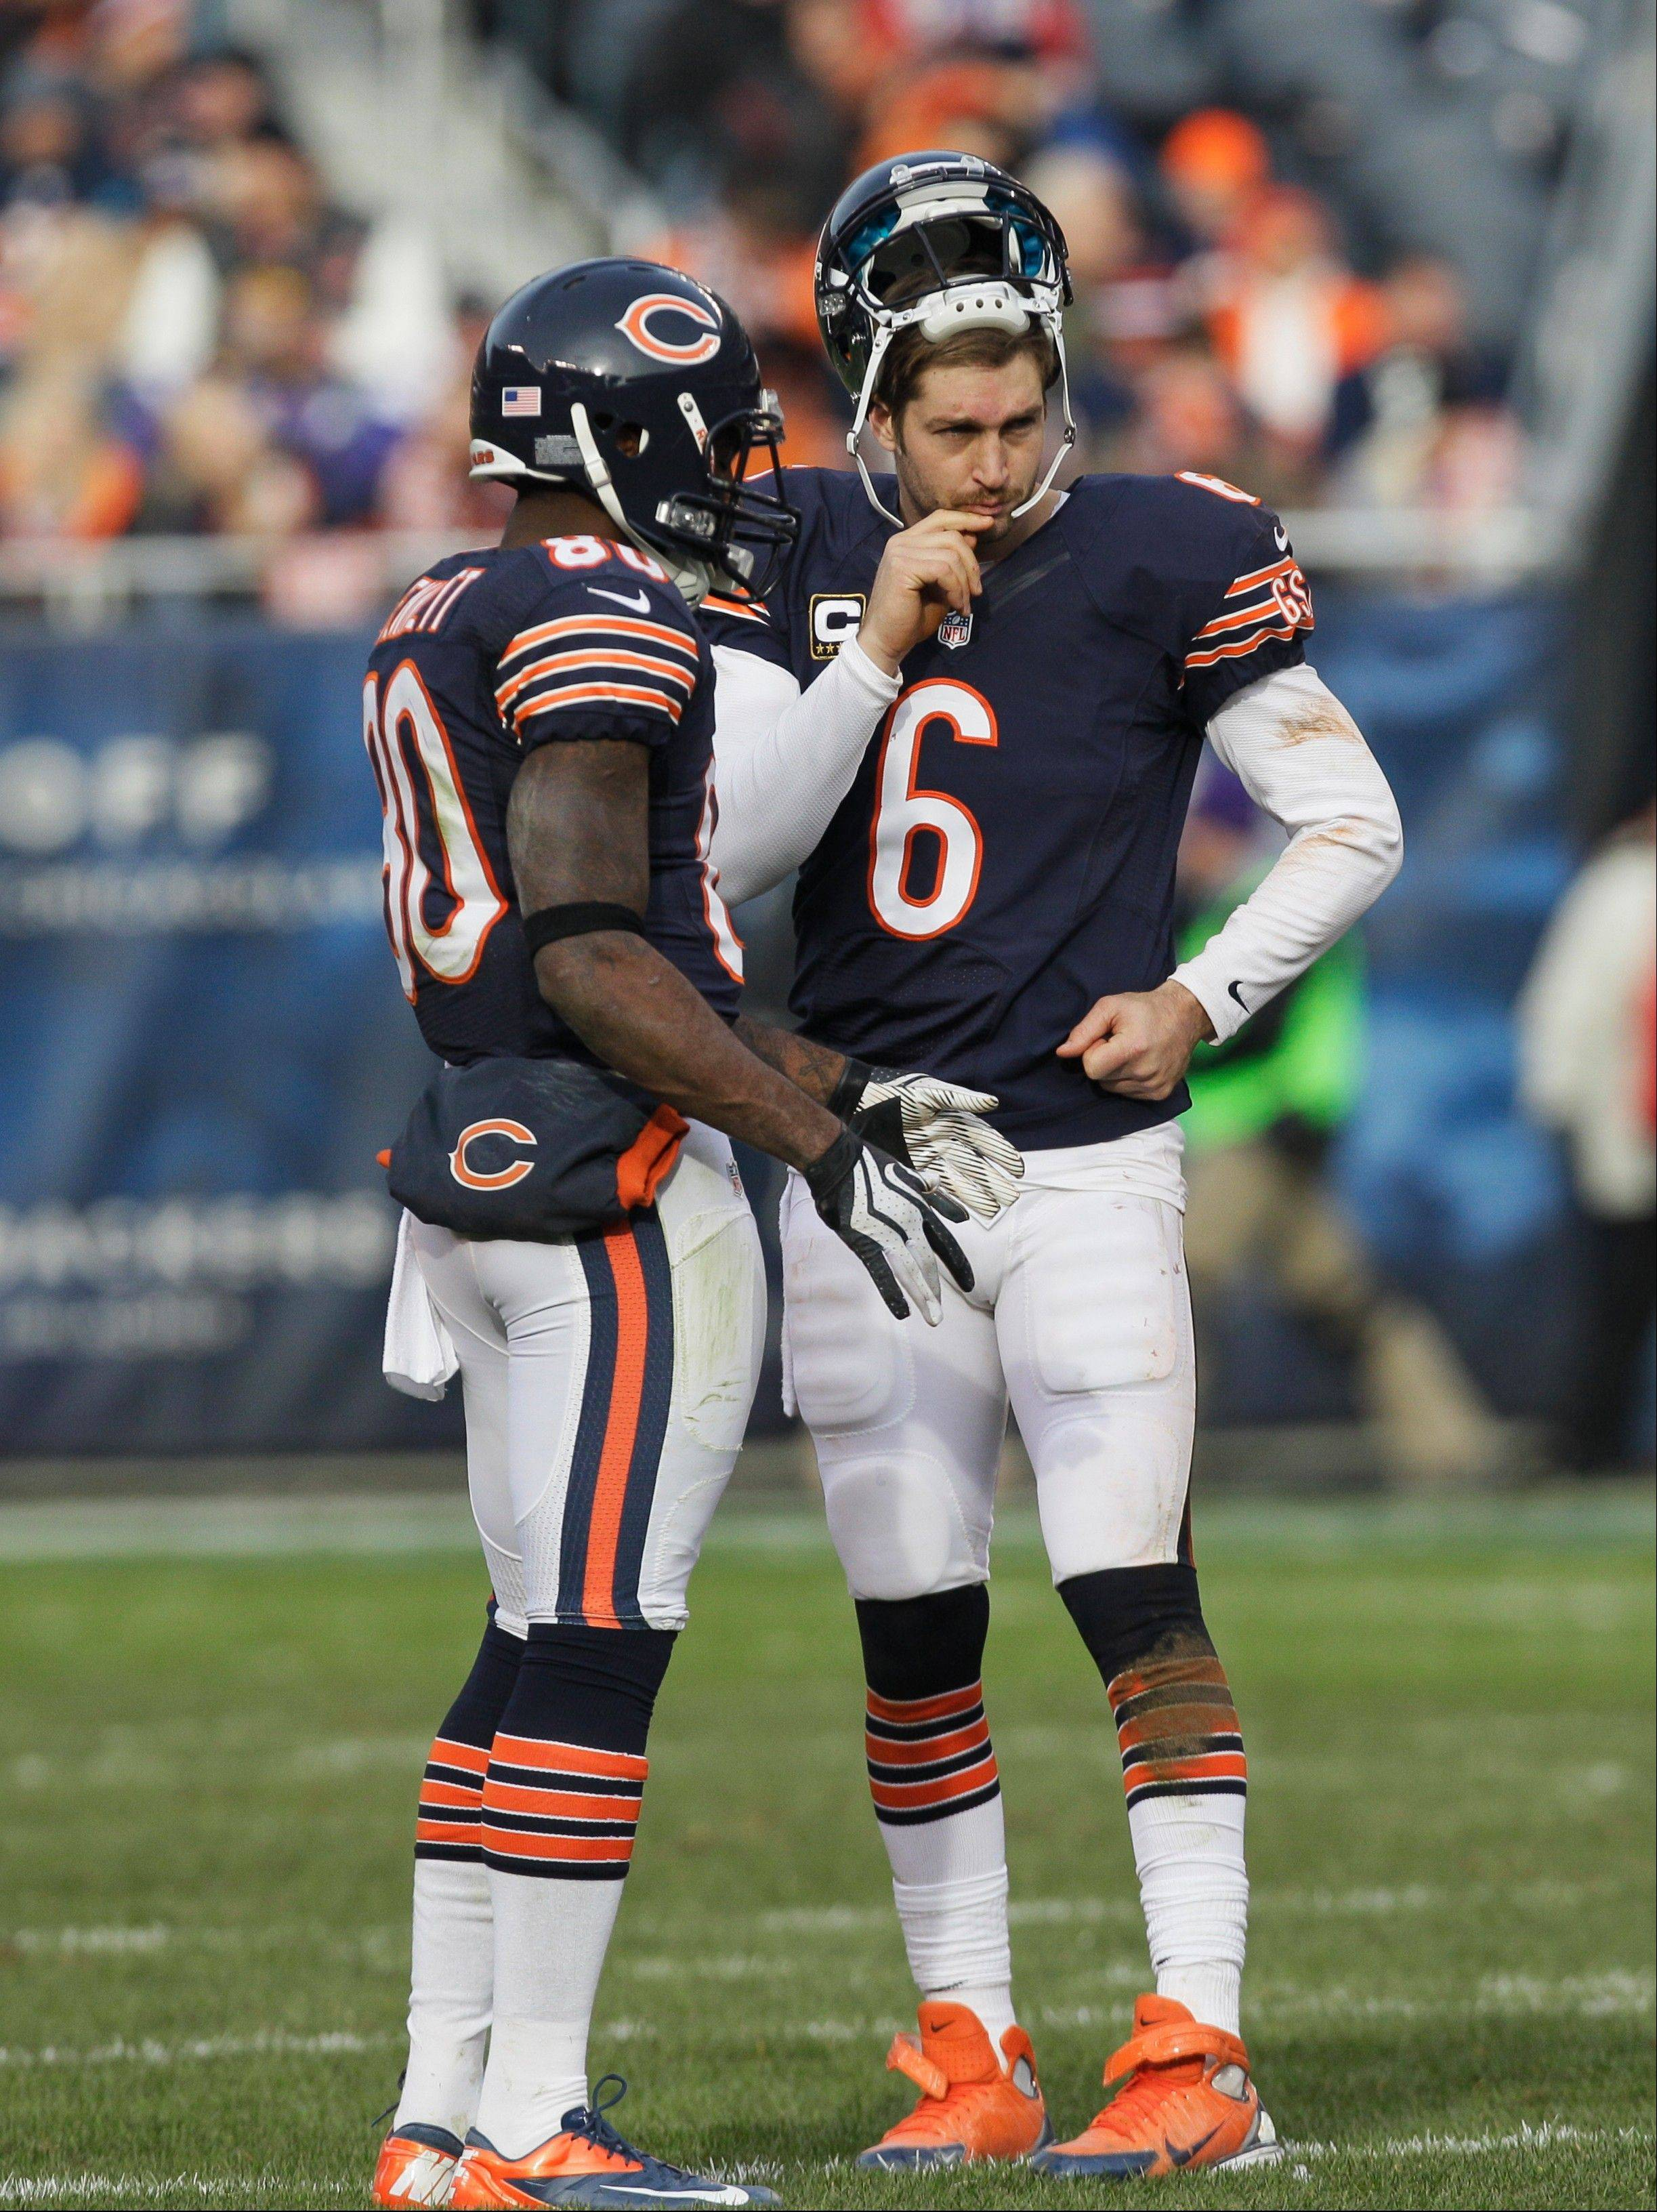 Bears quarterback Jay Cutler talks with wide receiver Earl Bennett during a break in the action last season against the Minnesota Vikings.